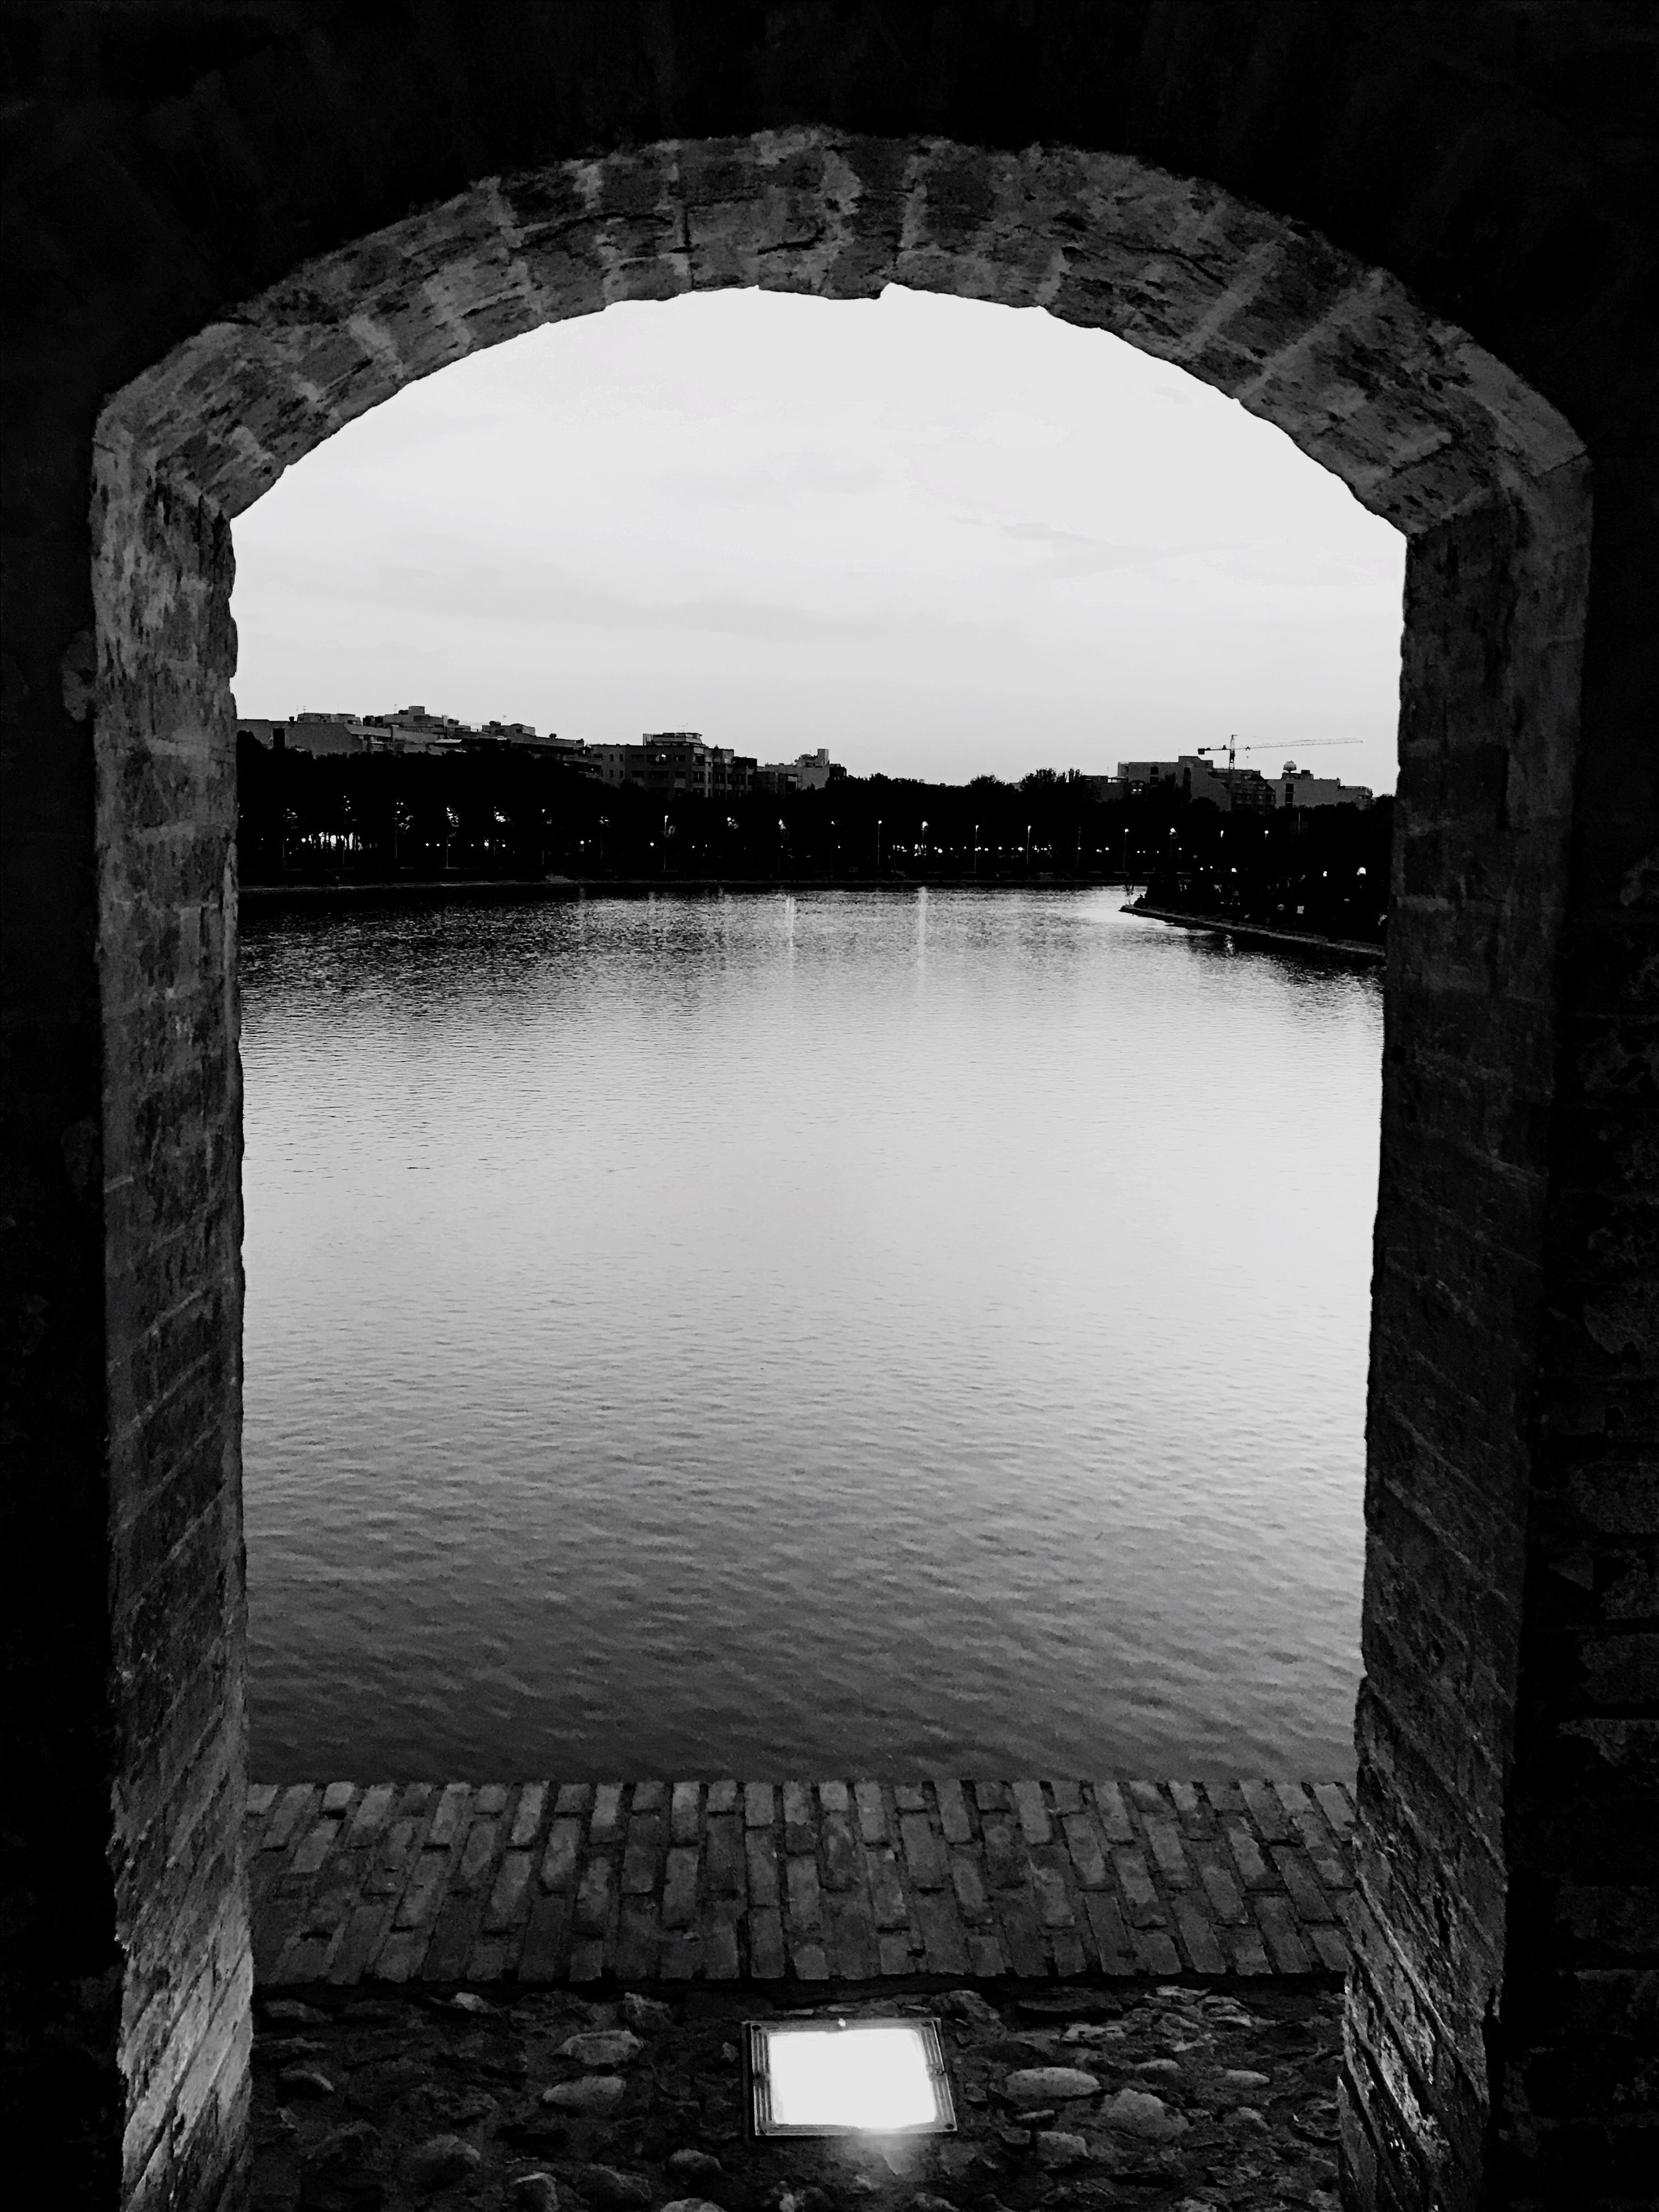 water, architecture, built structure, arch, reflection, day, no people, sky, nature, scenics, clear sky, outdoors, beauty in nature